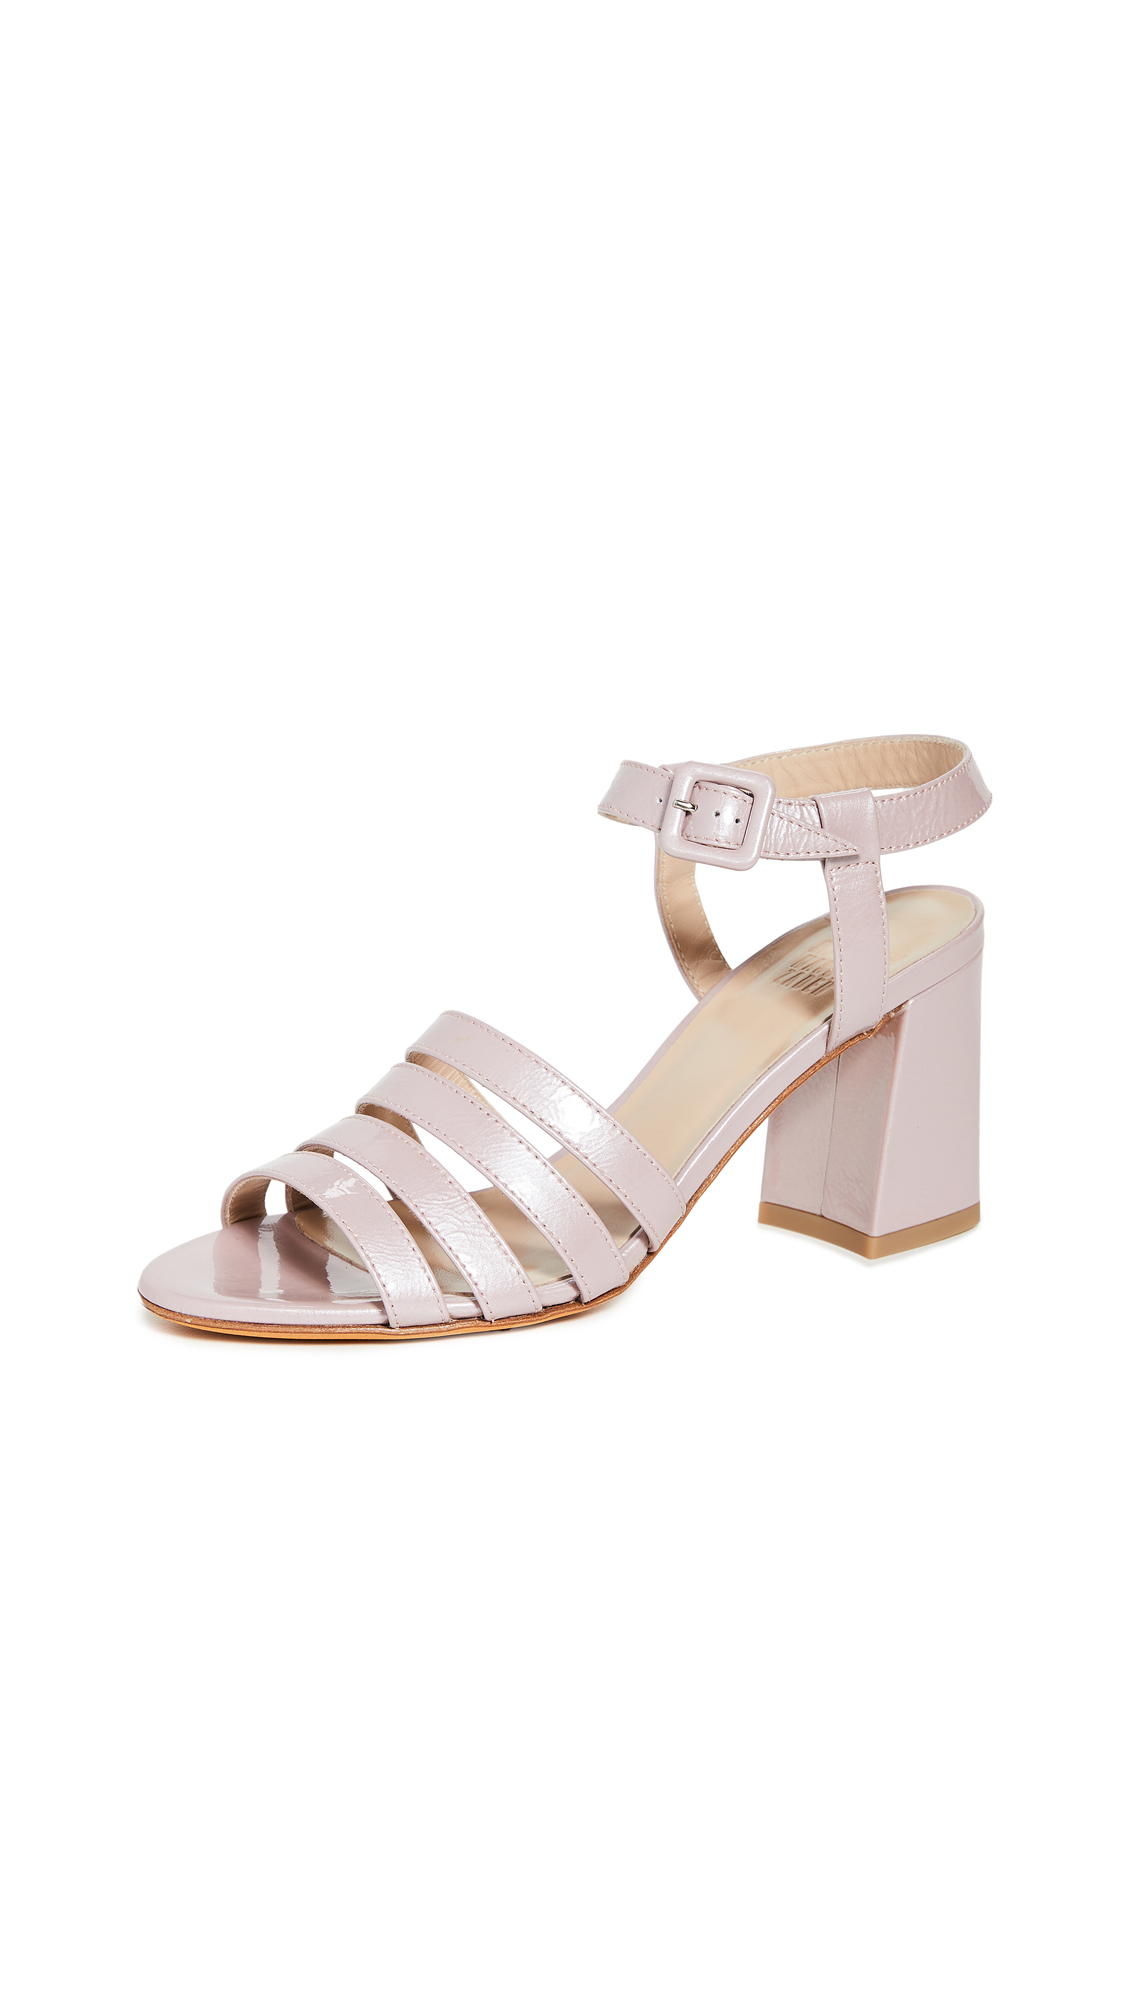 Maryam Nassir Zadeh Palma High Sandals – 60% Off Sale